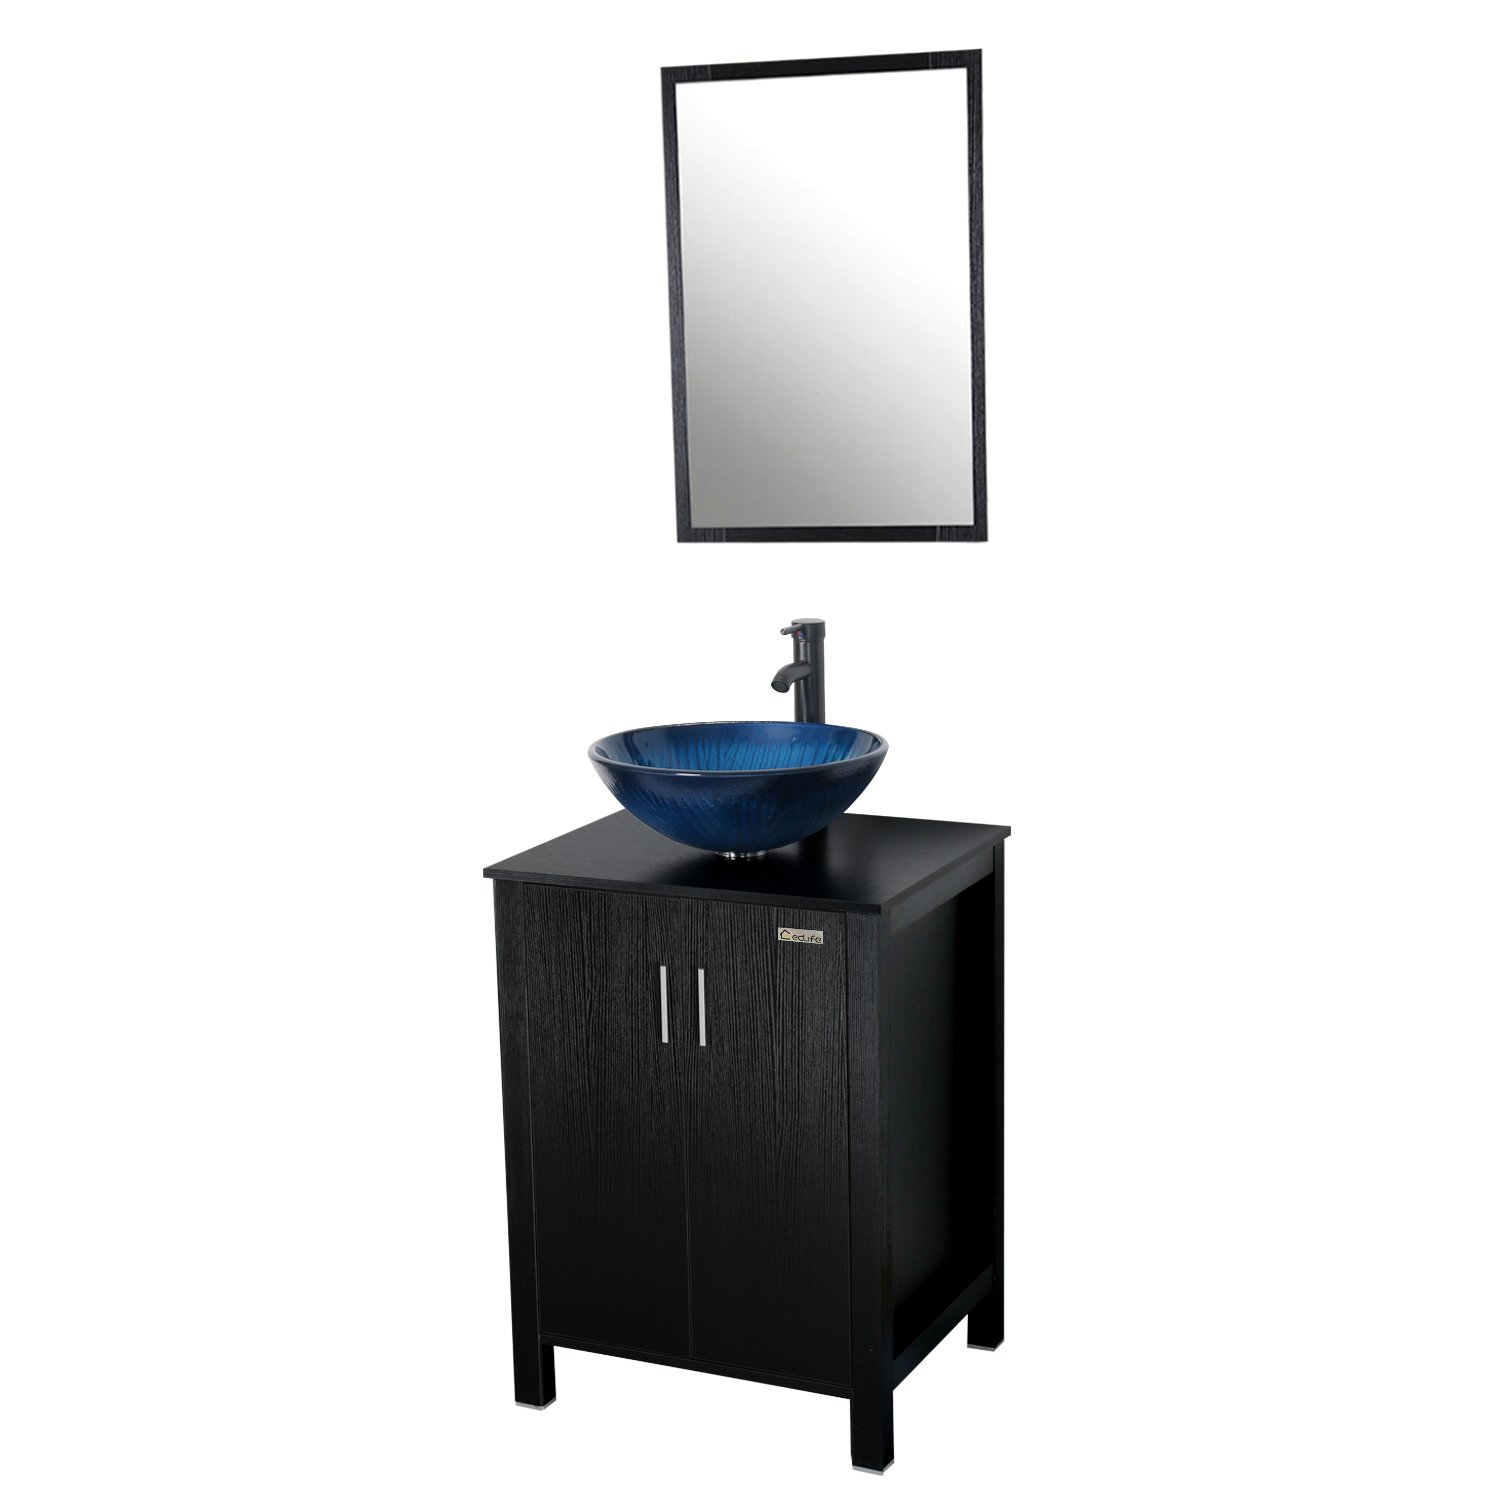 Eclife 24 inch Big Storage Bathroom Vanity Combo Modern MDF Cabinet with Vanity Mirror Tempered Glass Counter Top Vessel Sink with 1.5 GPM Faucet and Pop Up Drain (Blue Combo)